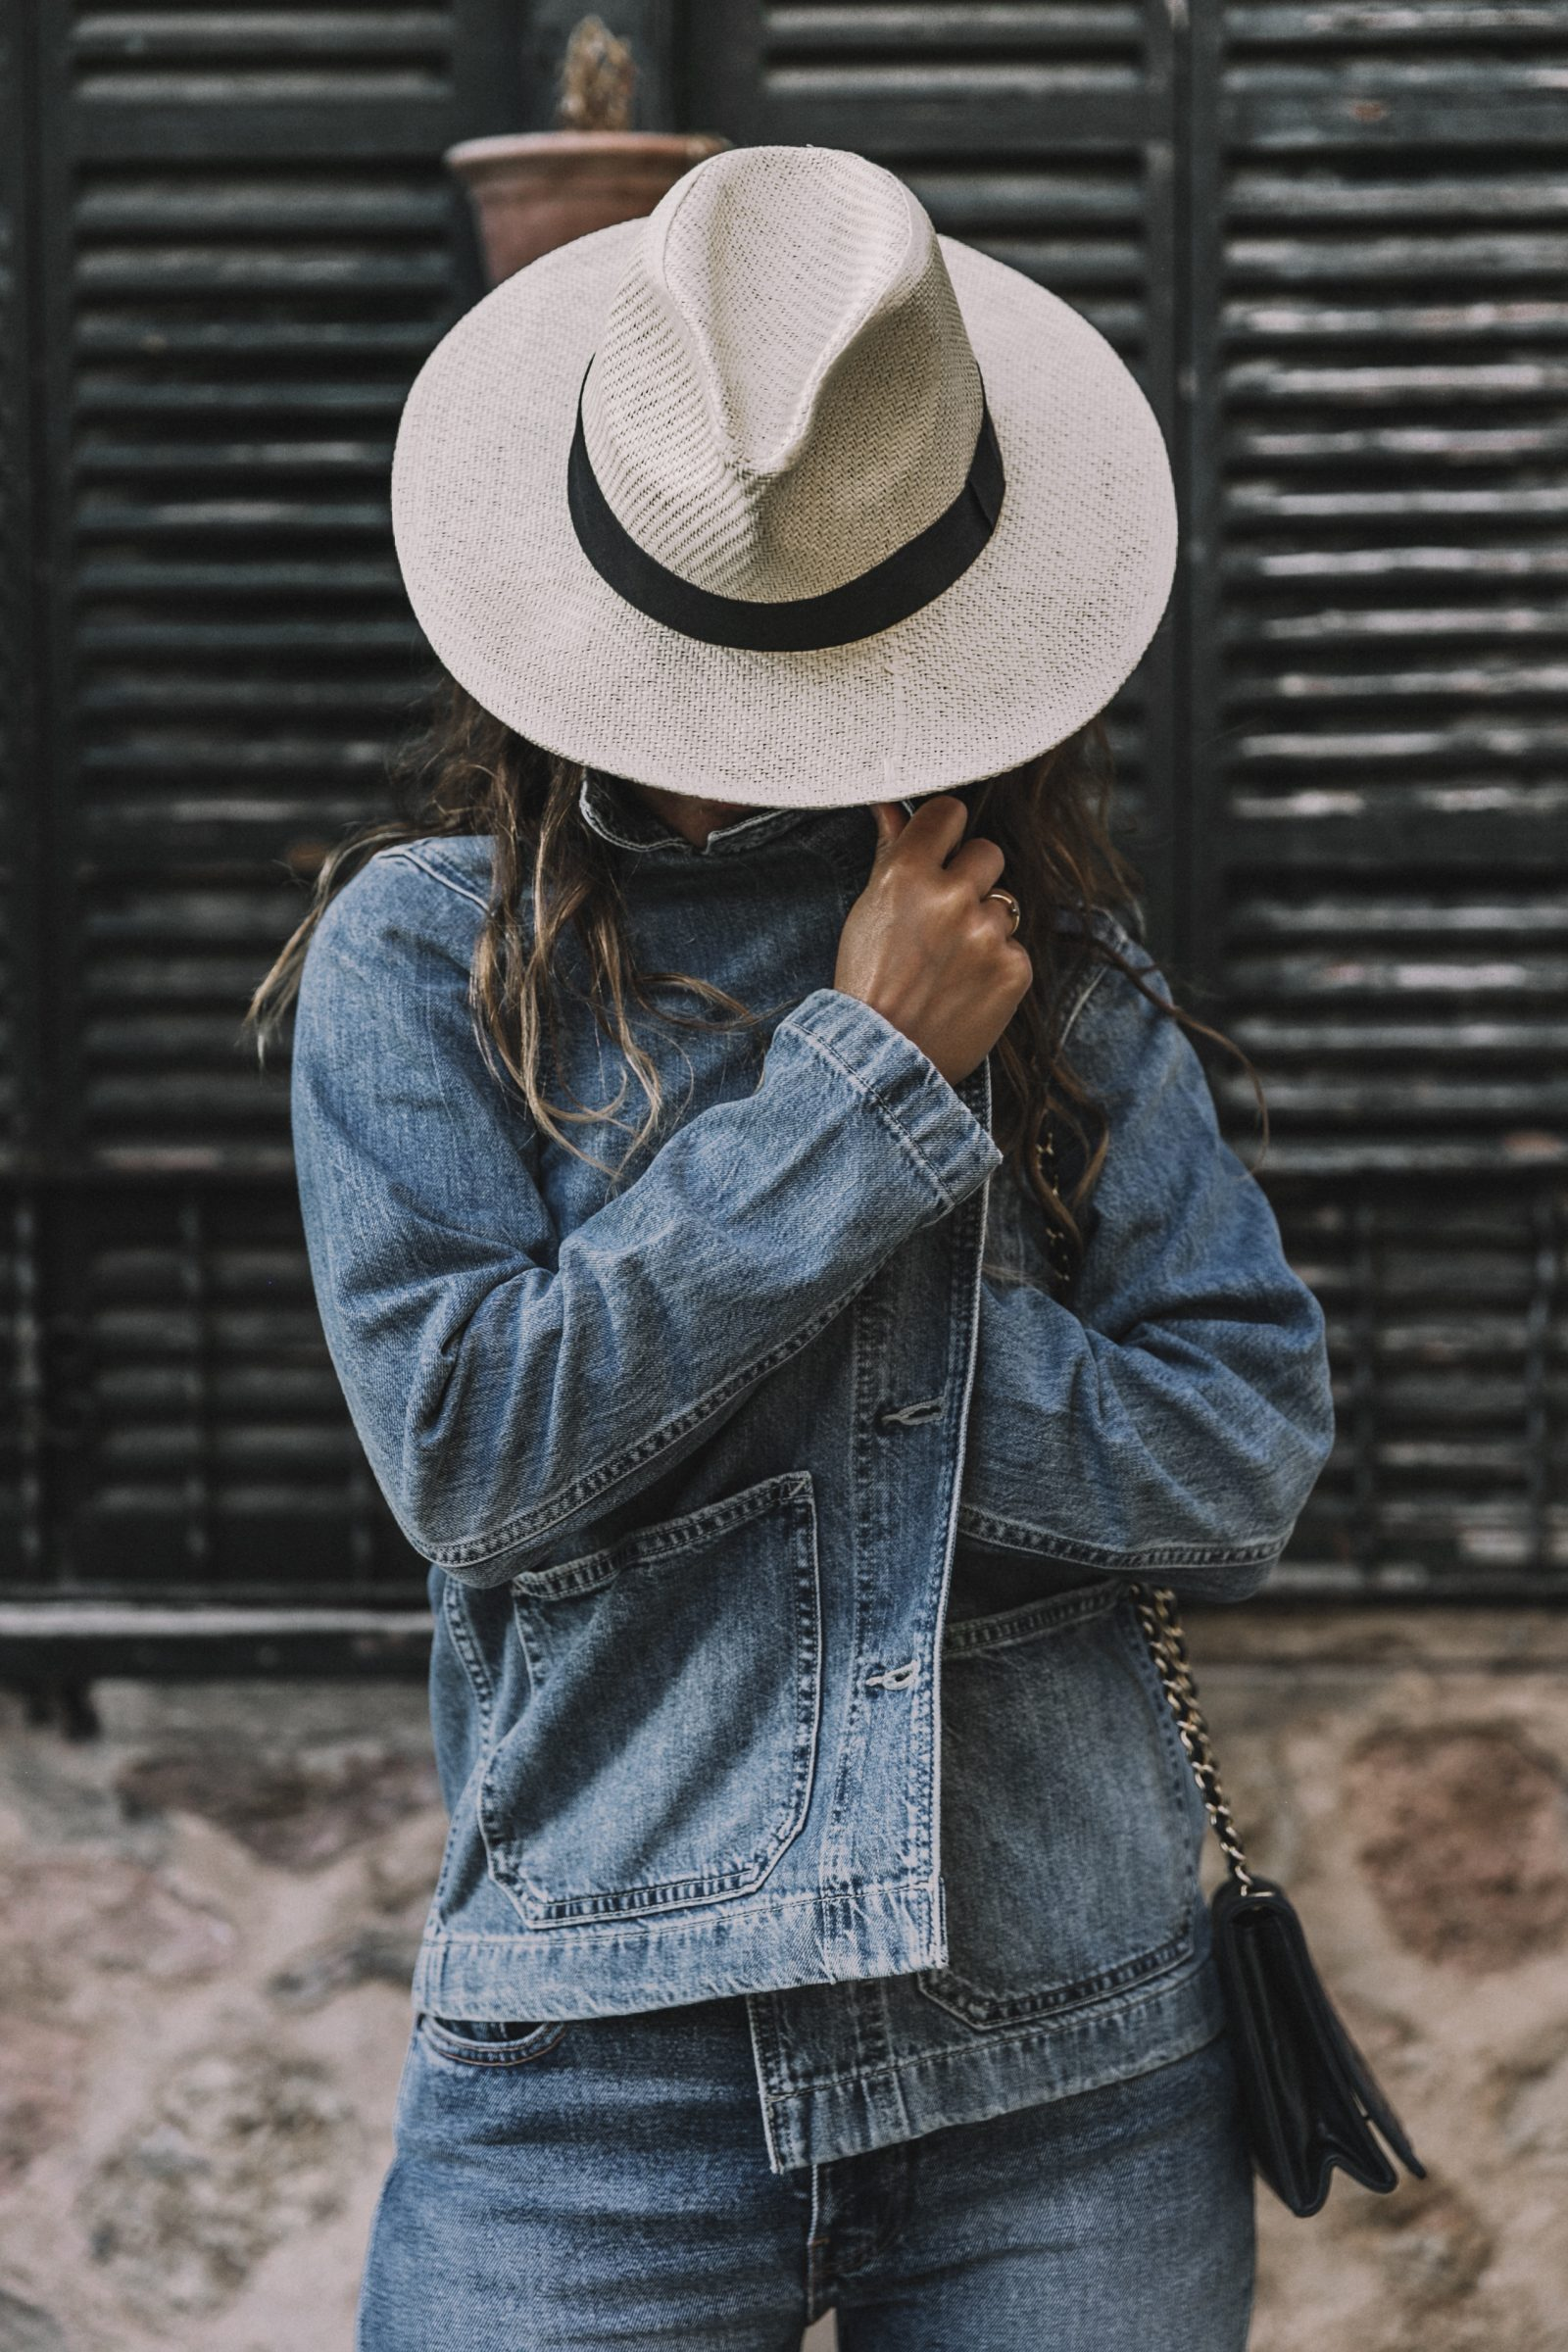 Live_in_Levis-Denim-Who_What_Wear-Levis-Denim-Double_Denim-Menorca-Street_Style-Collage_Vintage-141